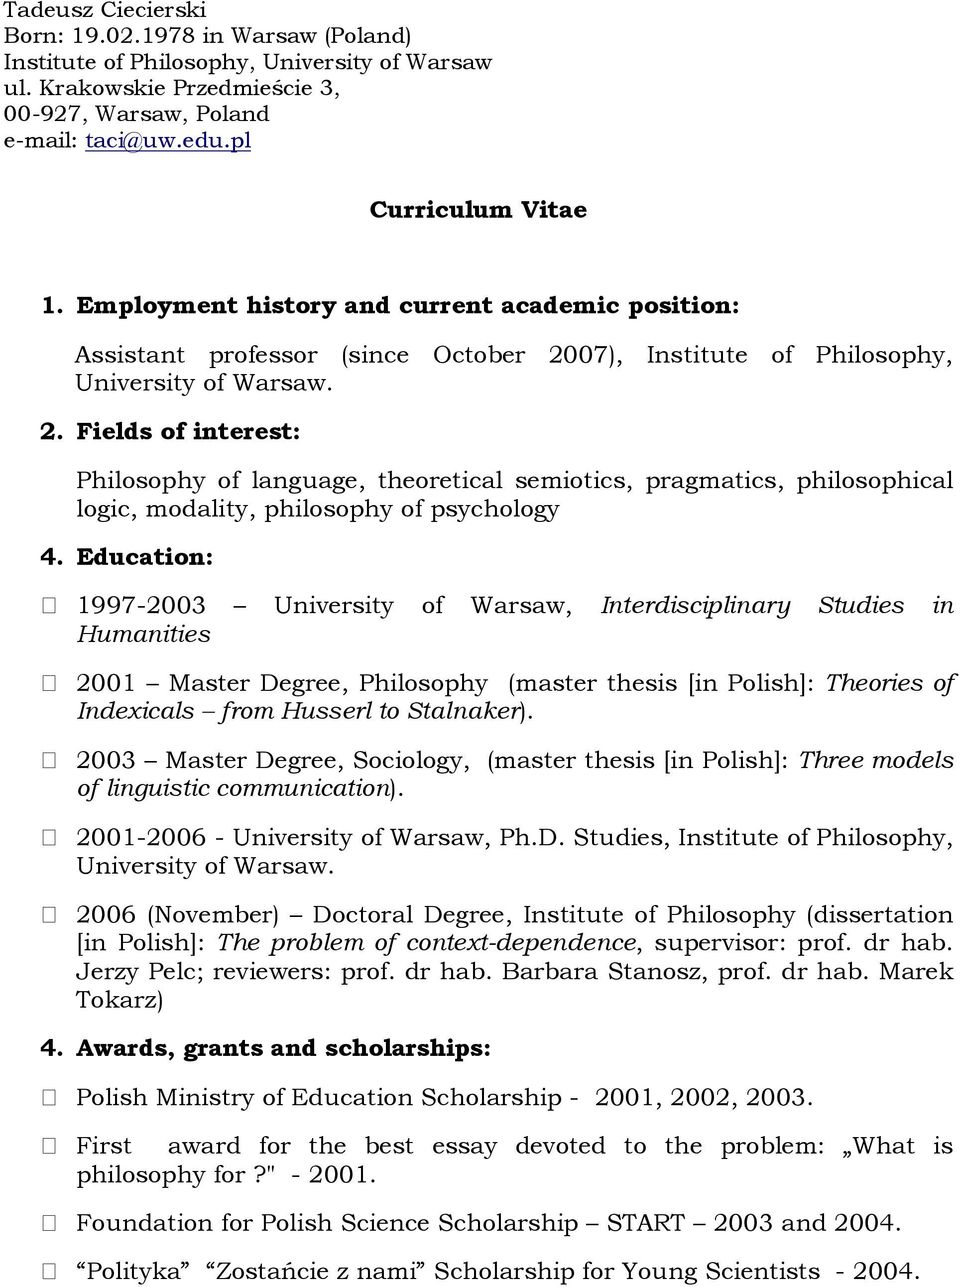 Education: 1997-2003 University of Warsaw, Interdisciplinary Studies in Humanities 2001 Master Degree, Philosophy (master thesis [in Polish]: Theories of Indexicals from Husserl to Stalnaker).